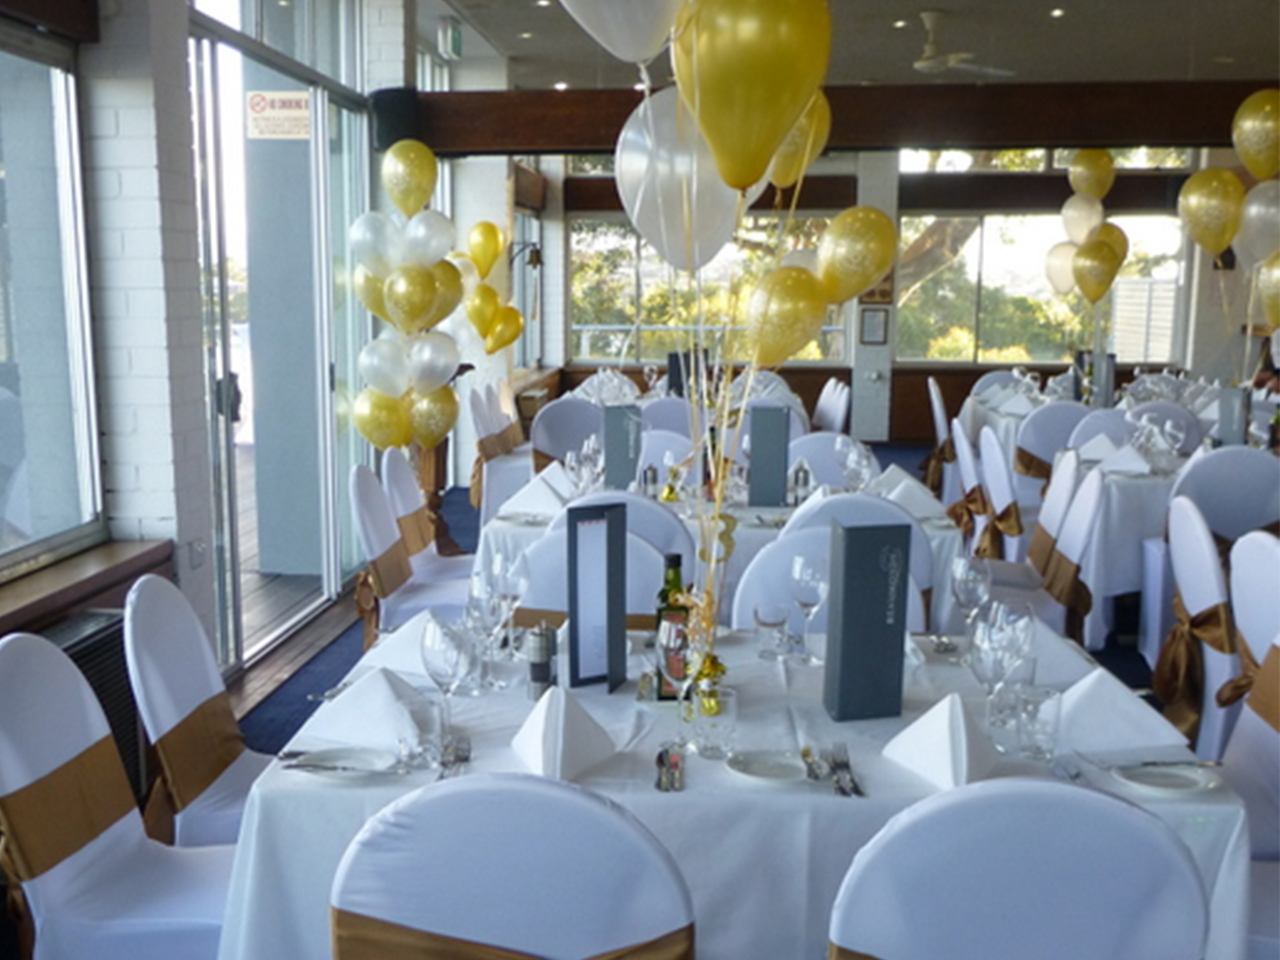 White And Yellow Theme In Tables And Chairs With Balloons Inside The Function Room